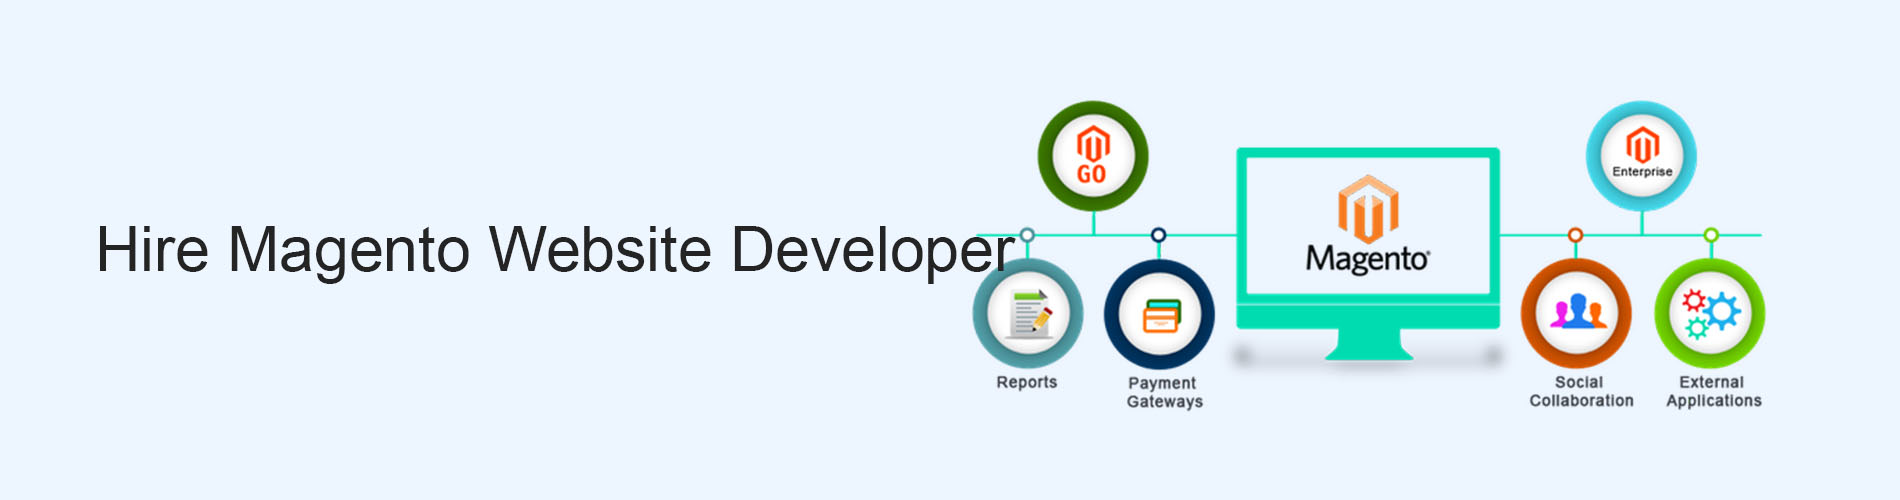 hire-magento-website-developer